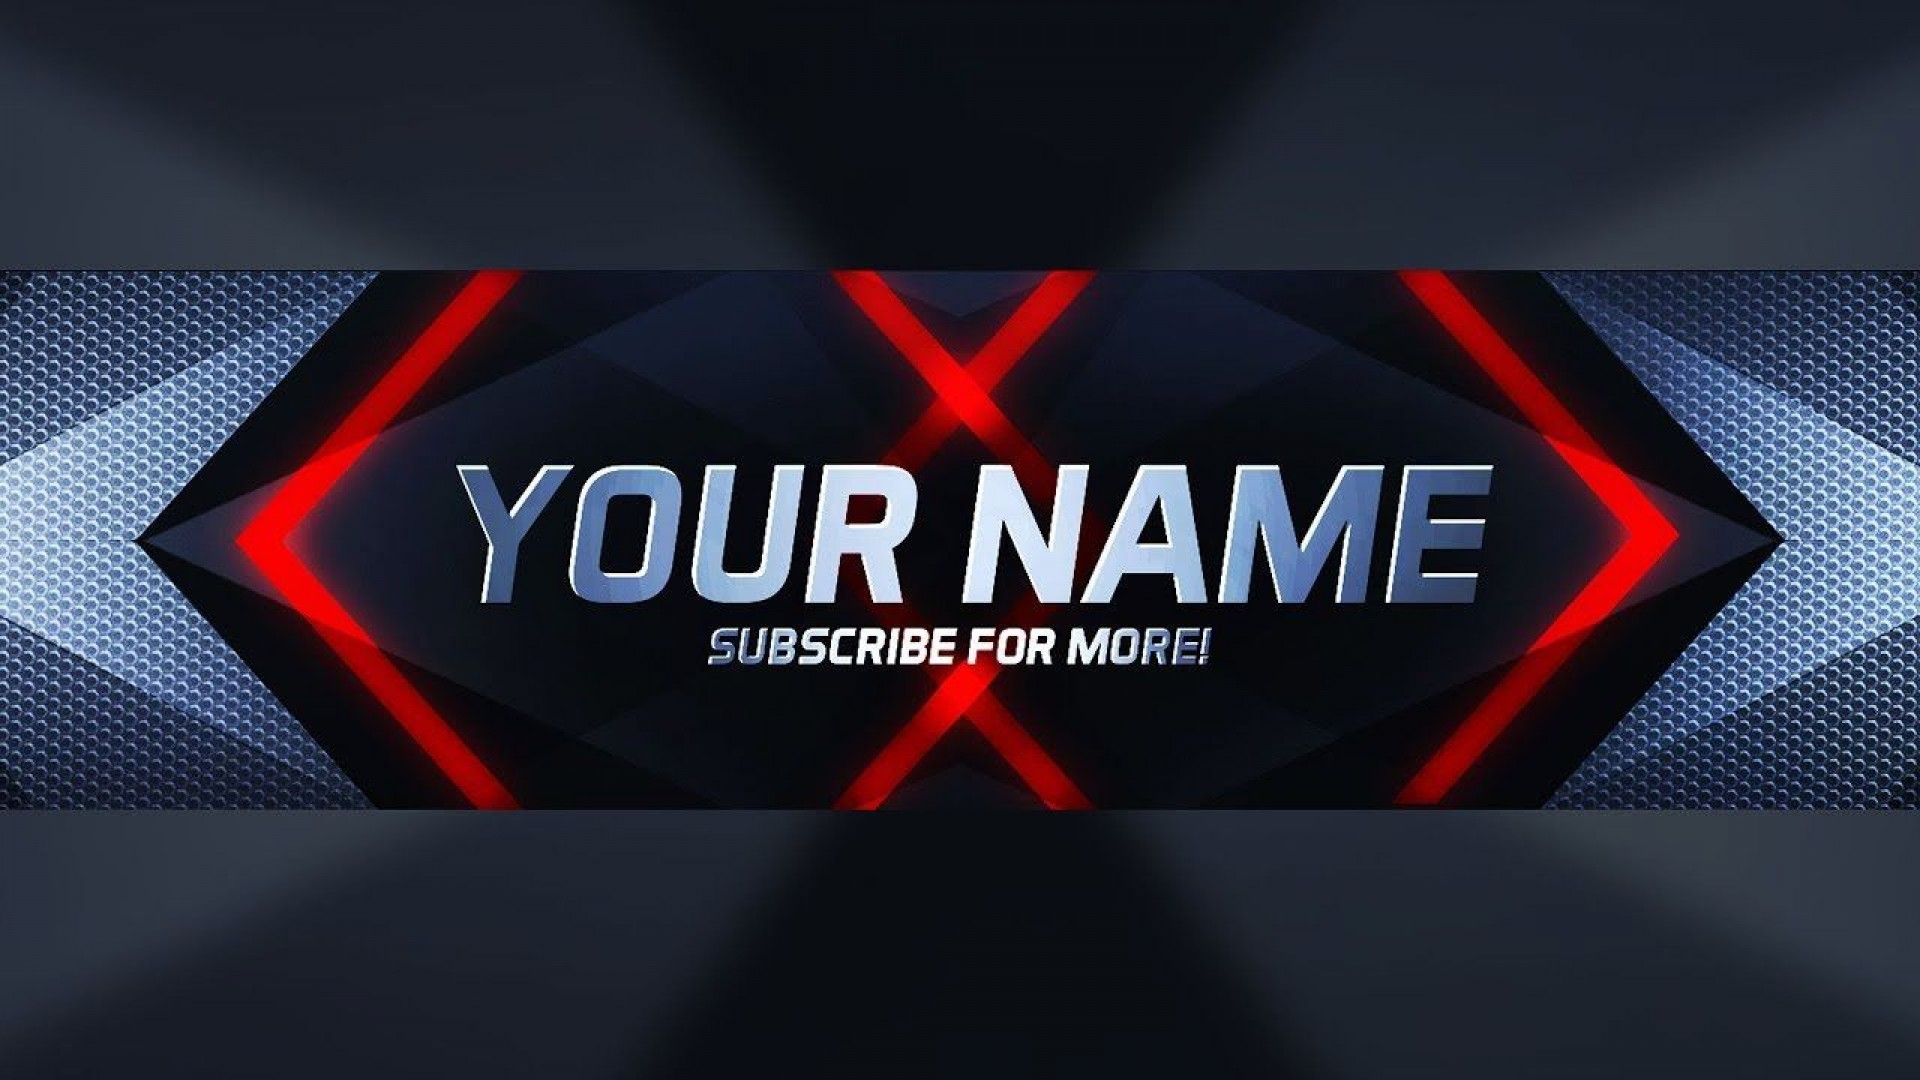 003 Excellent Free Channel Art Template Image 1920